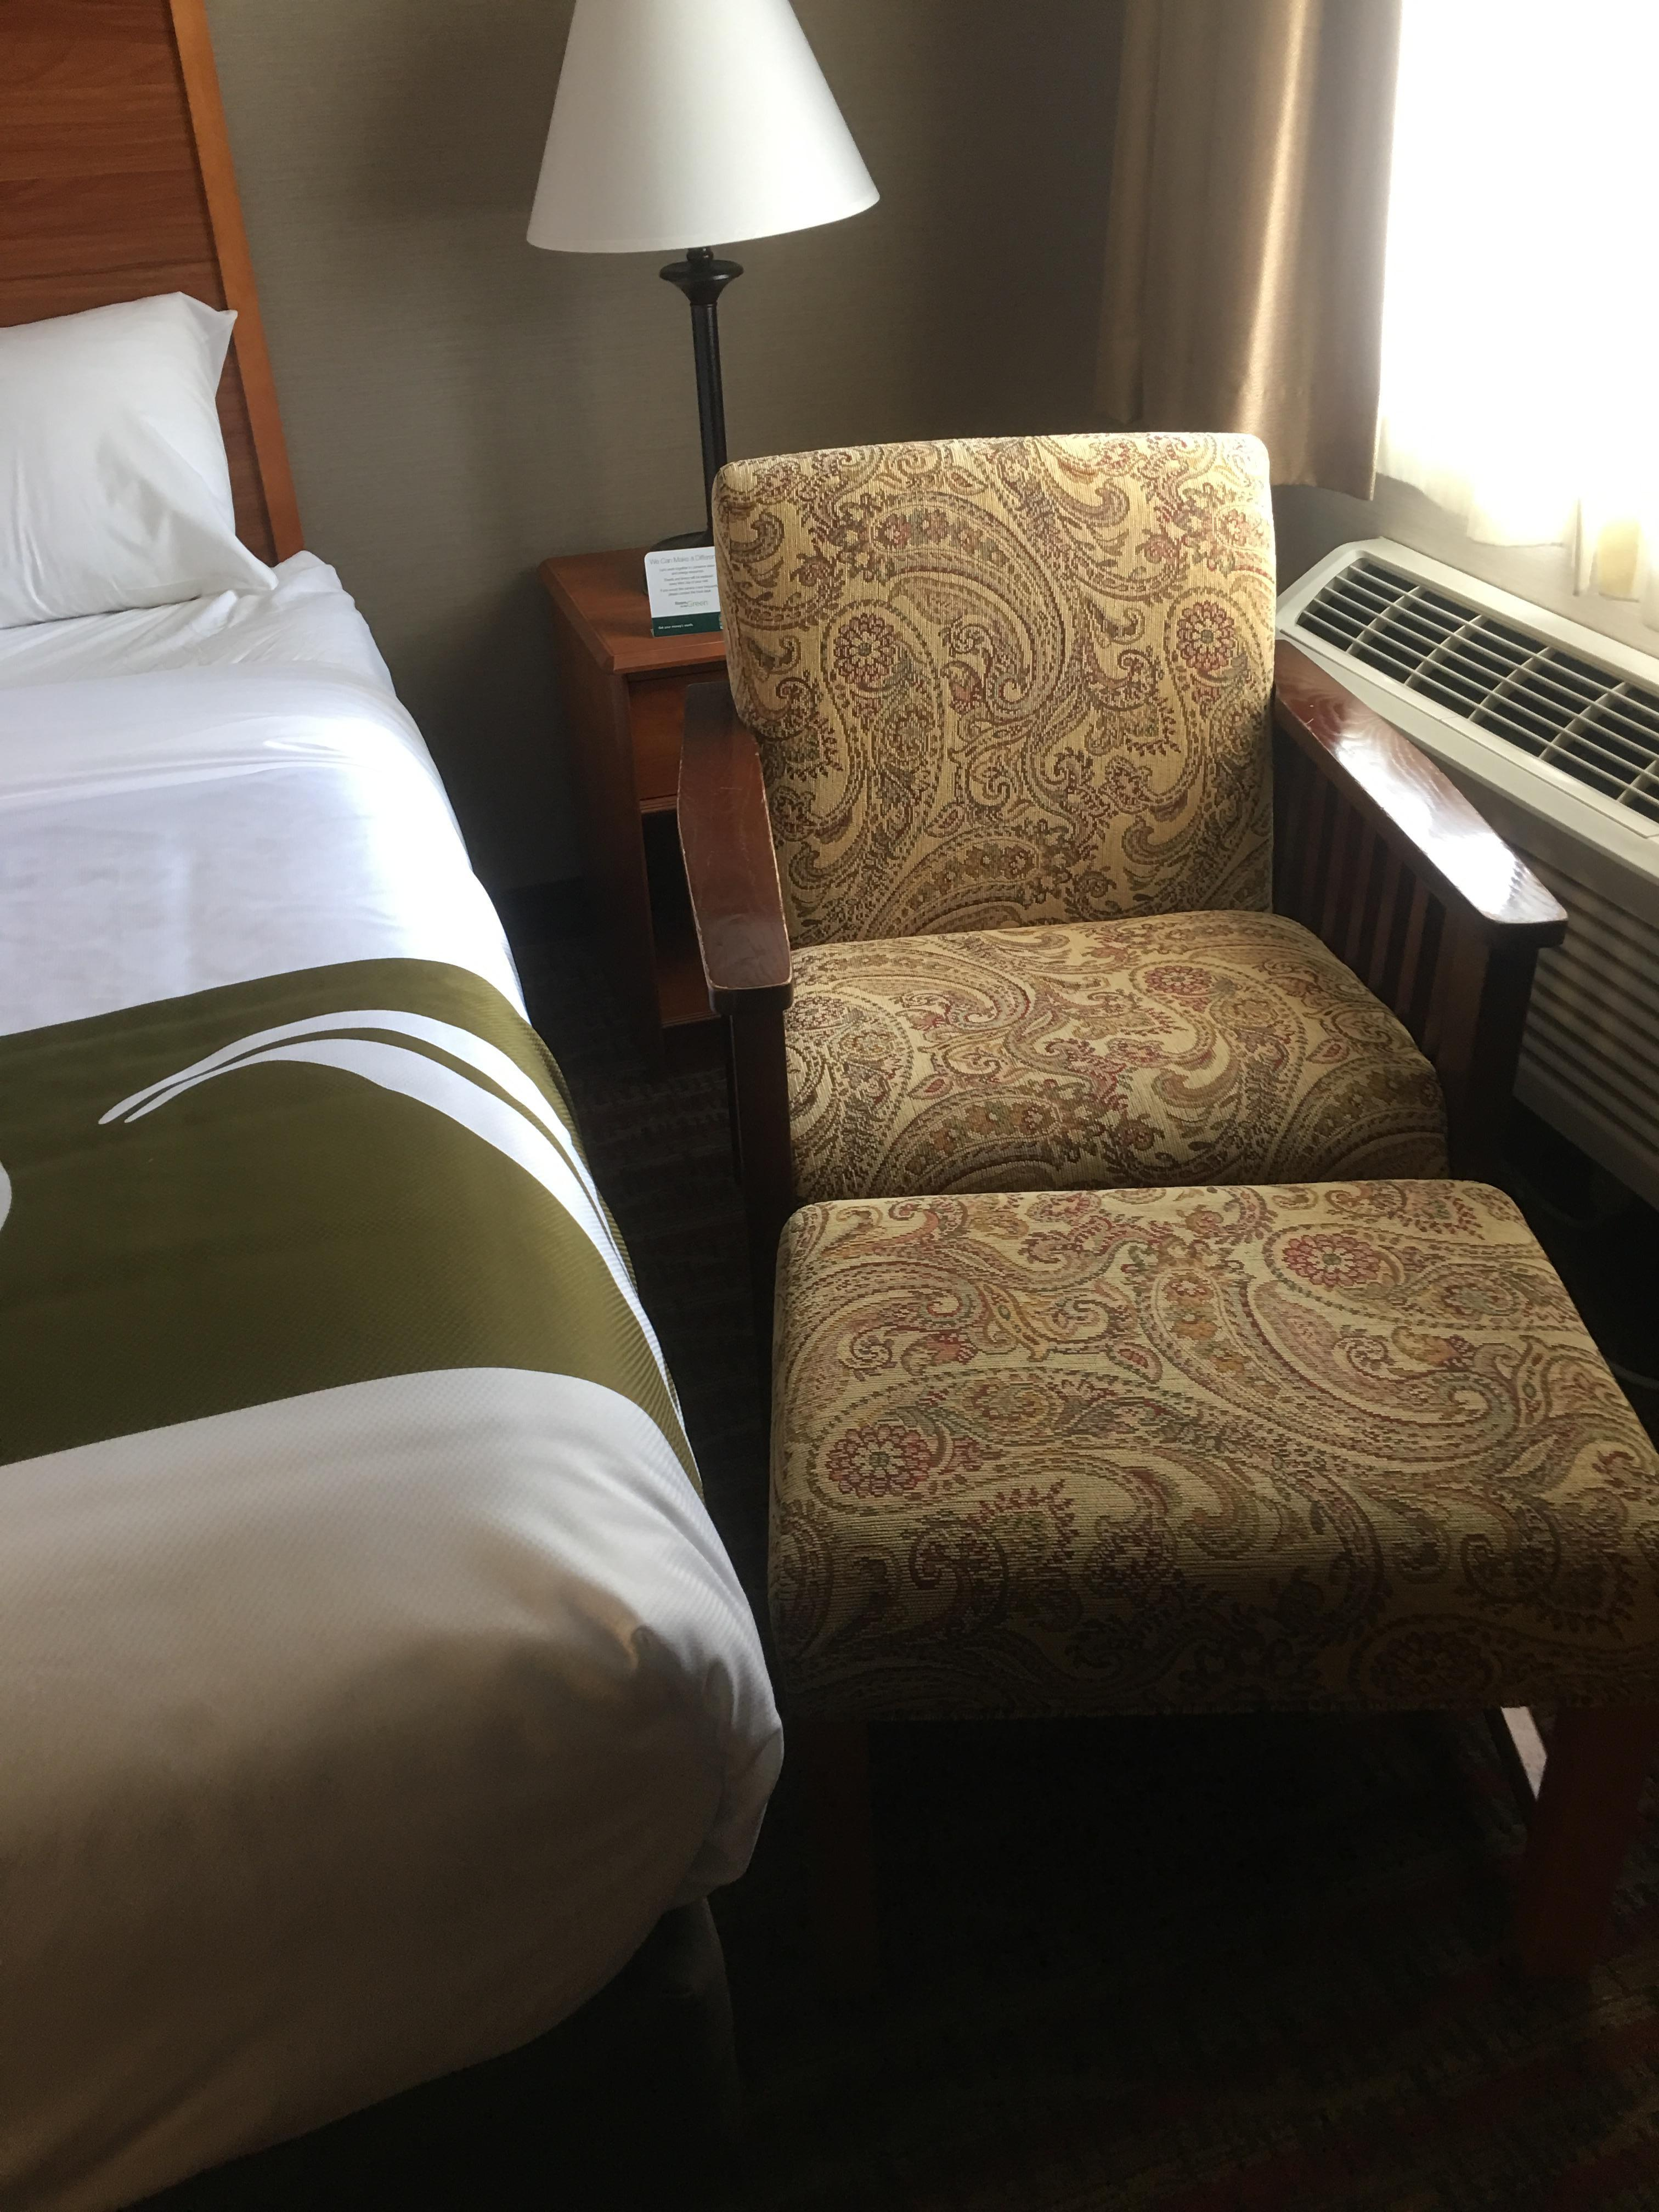 Chair and bed